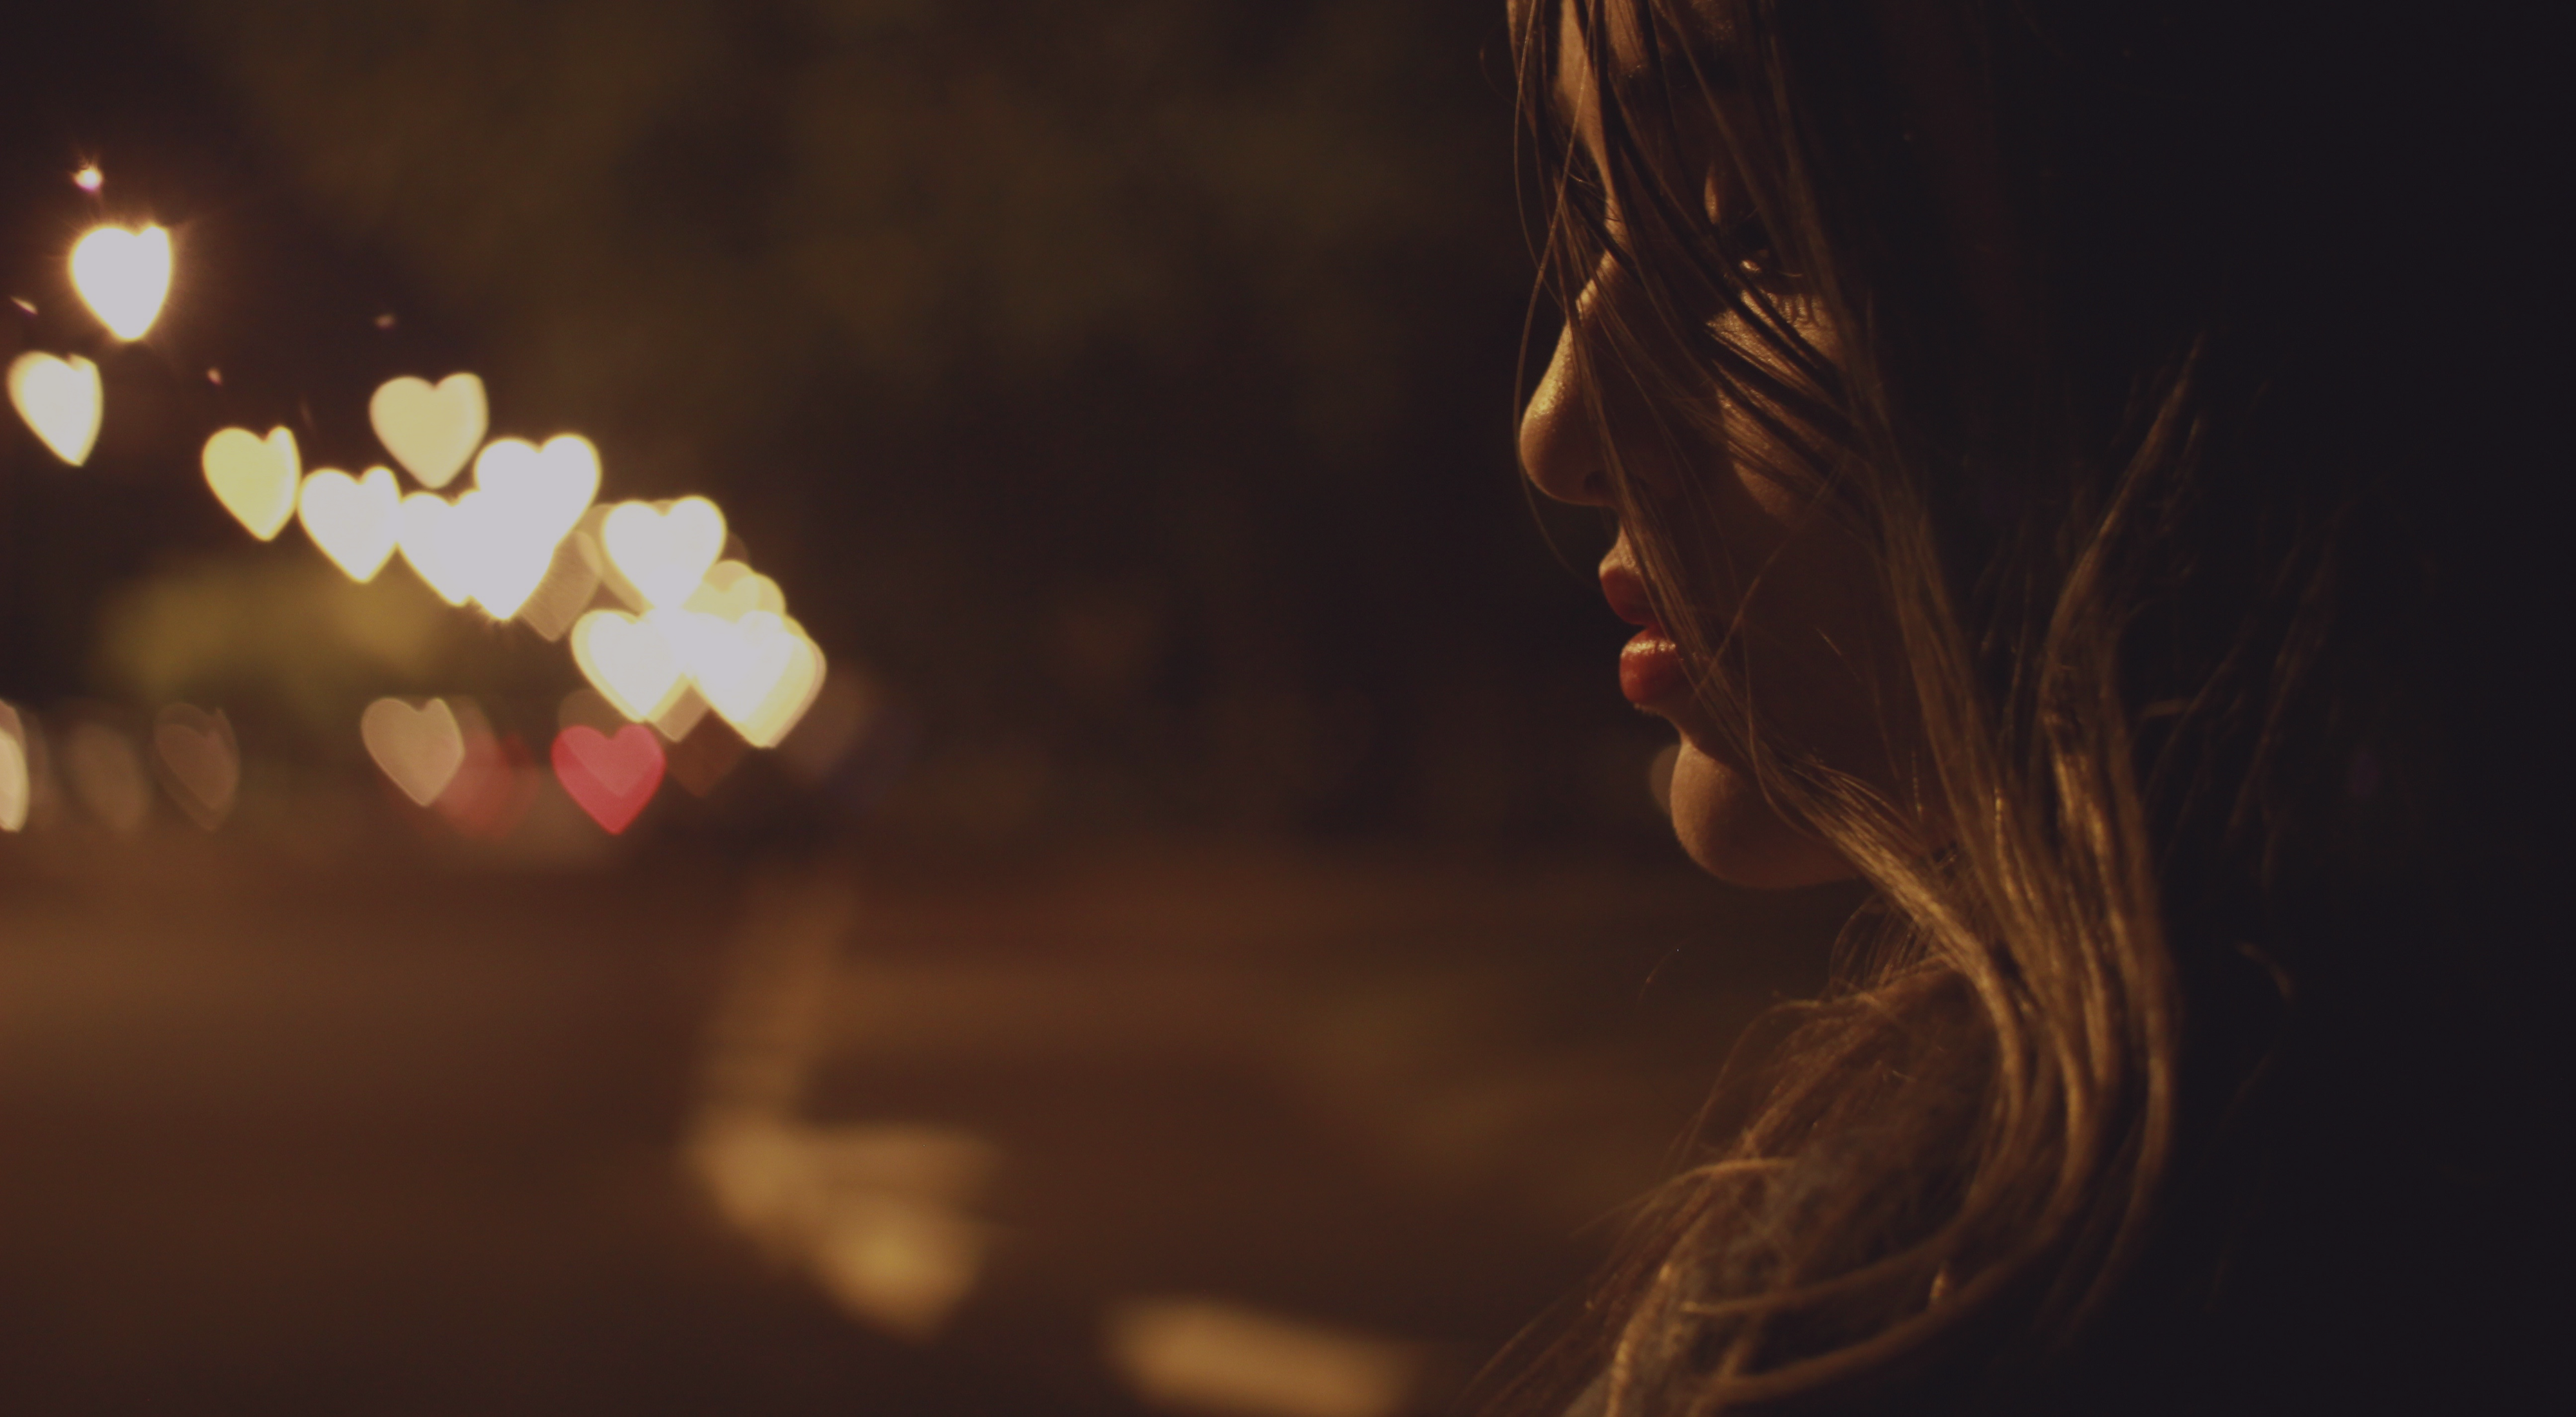 Sad woman on a city street at night, lit with heart-shaped lights.